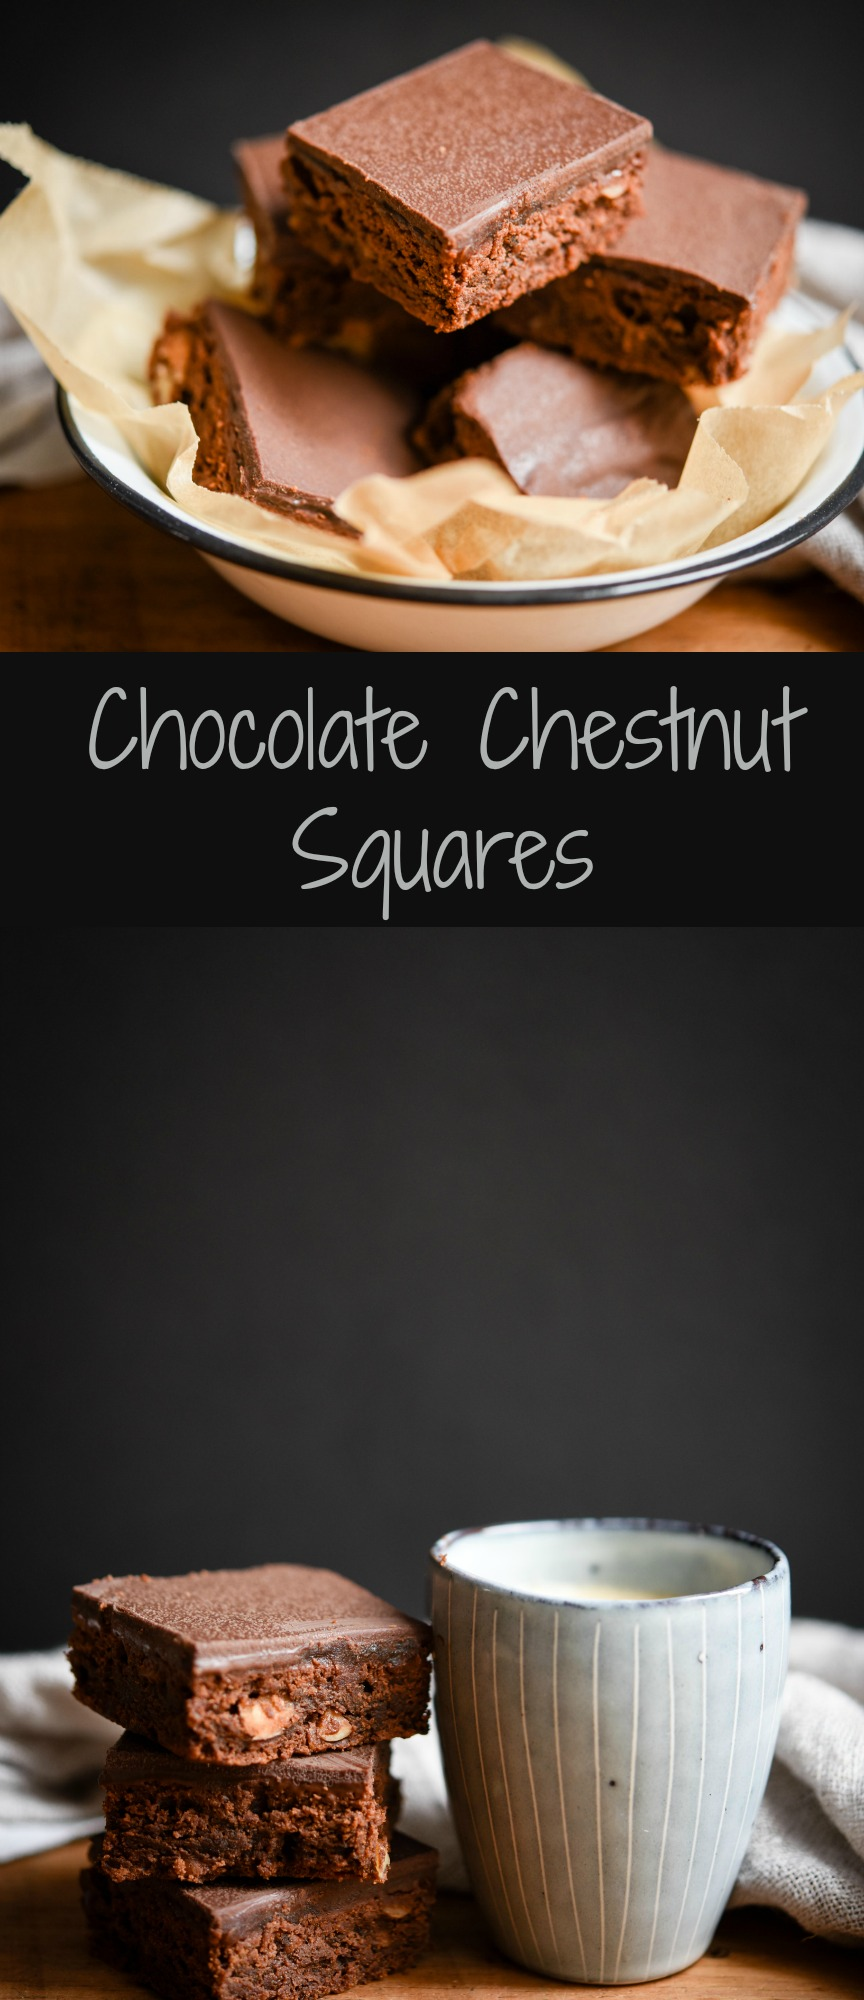 Chocolate Chestnut Squares | Patisserie Makes Perfect